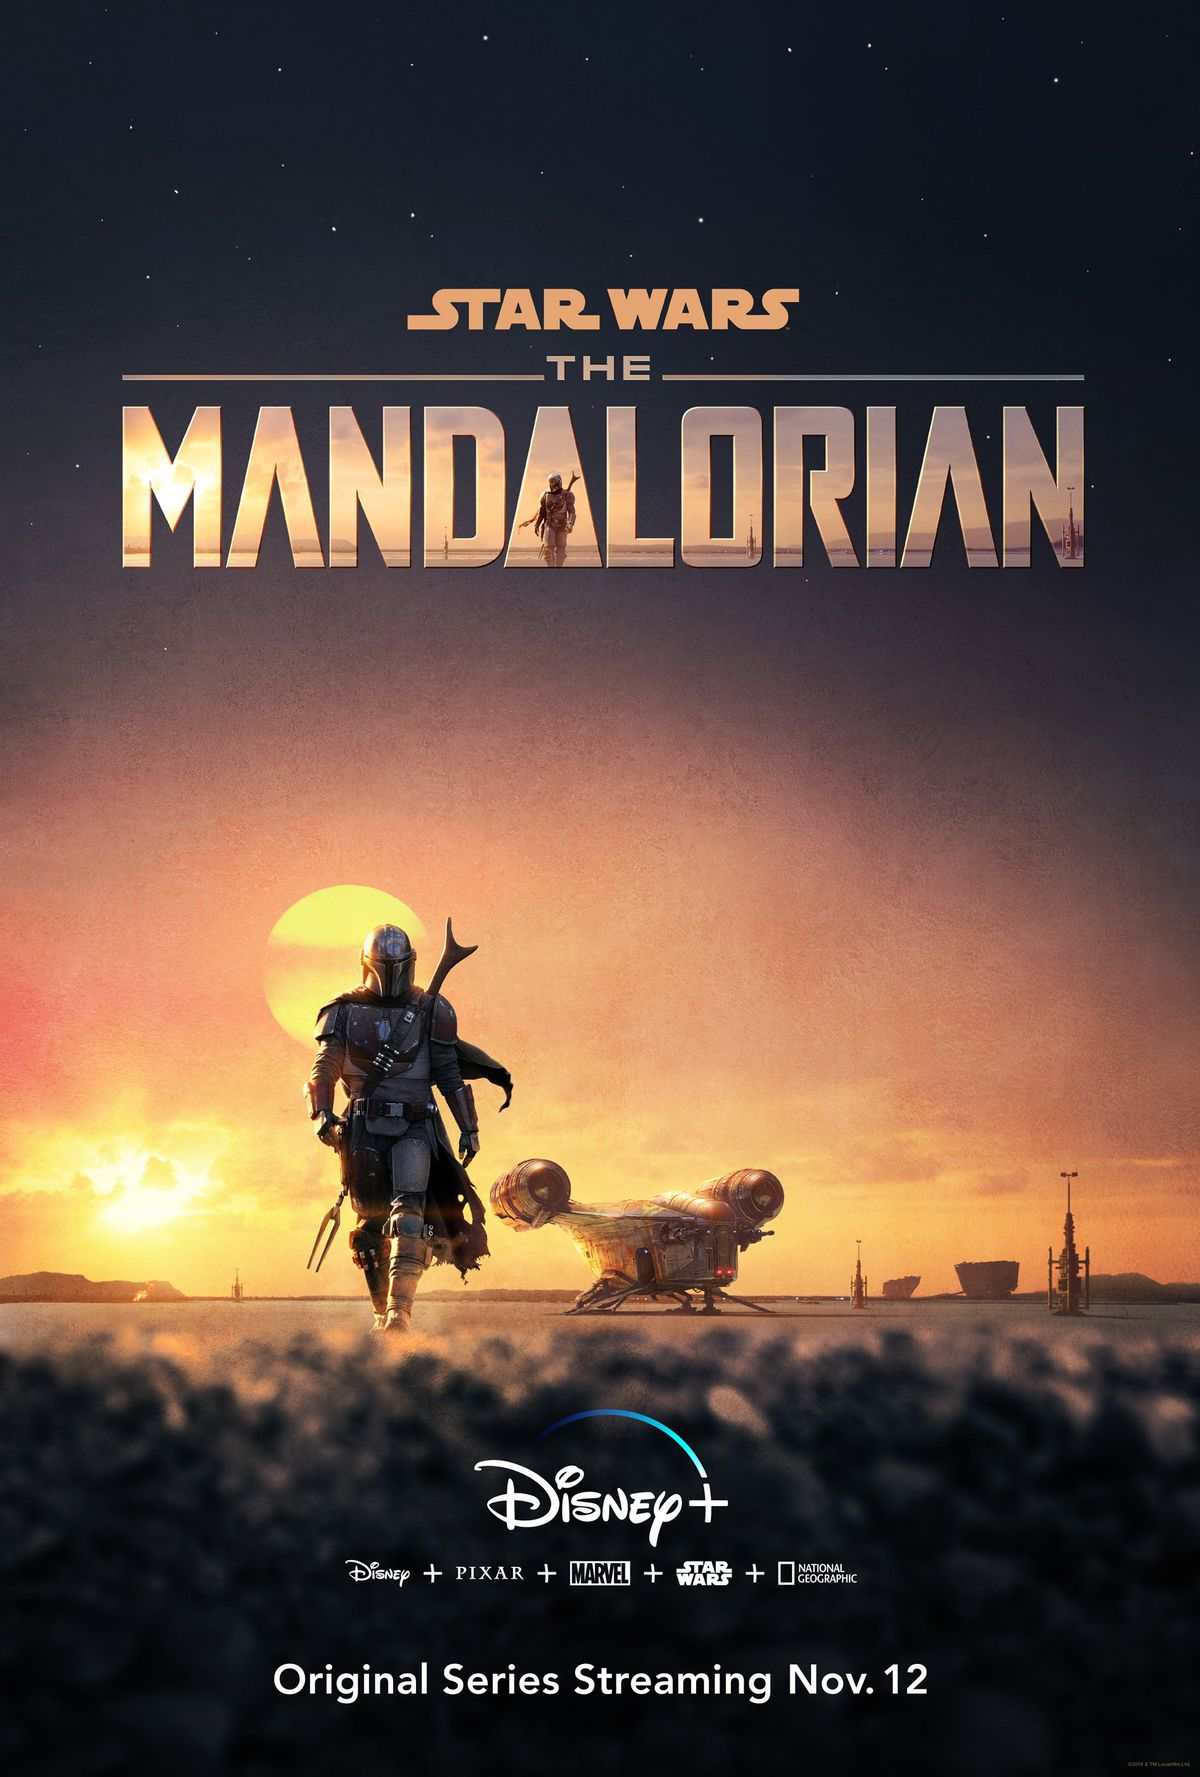 a lone gunslinger in mandalorian gear, a space ship in the distance, the sun is setting behind him